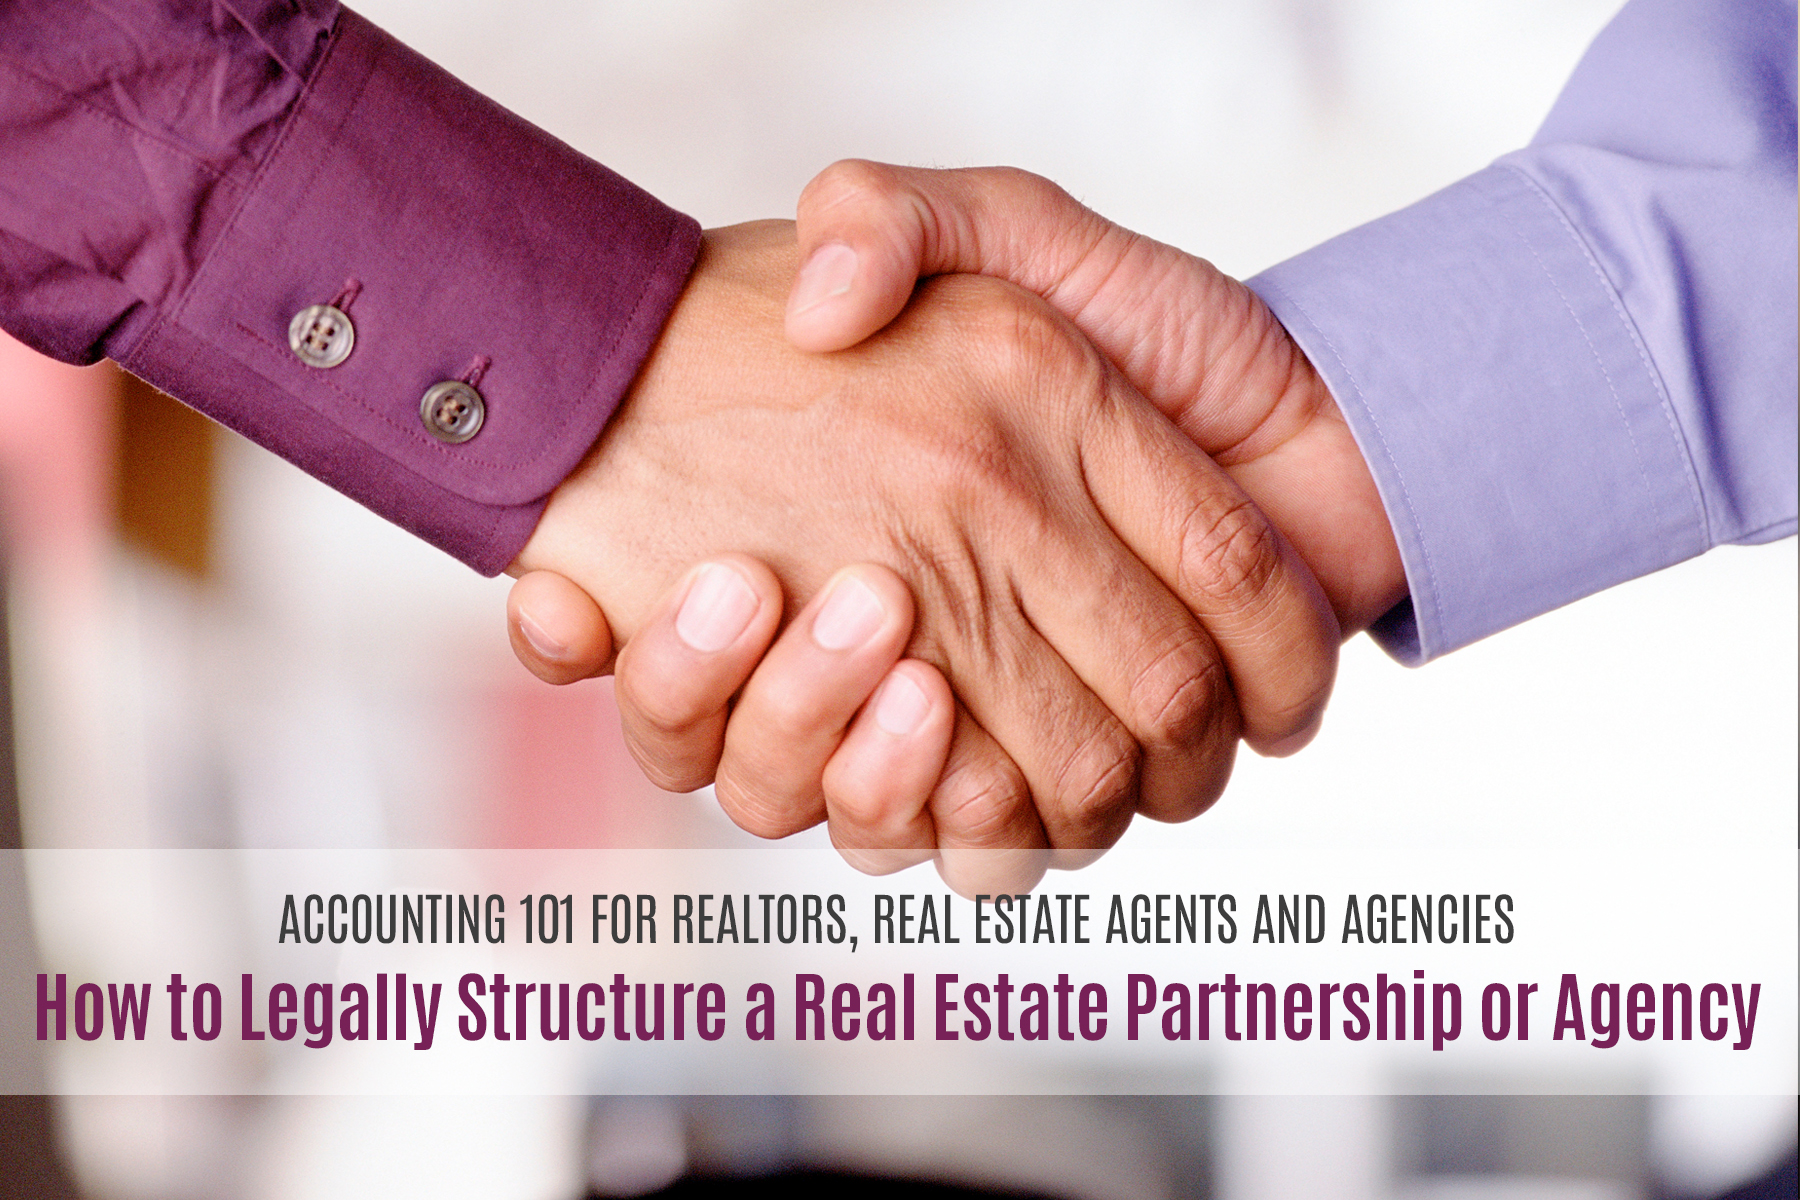 How To Legally Structure A Real Estate Partnership Or Agency